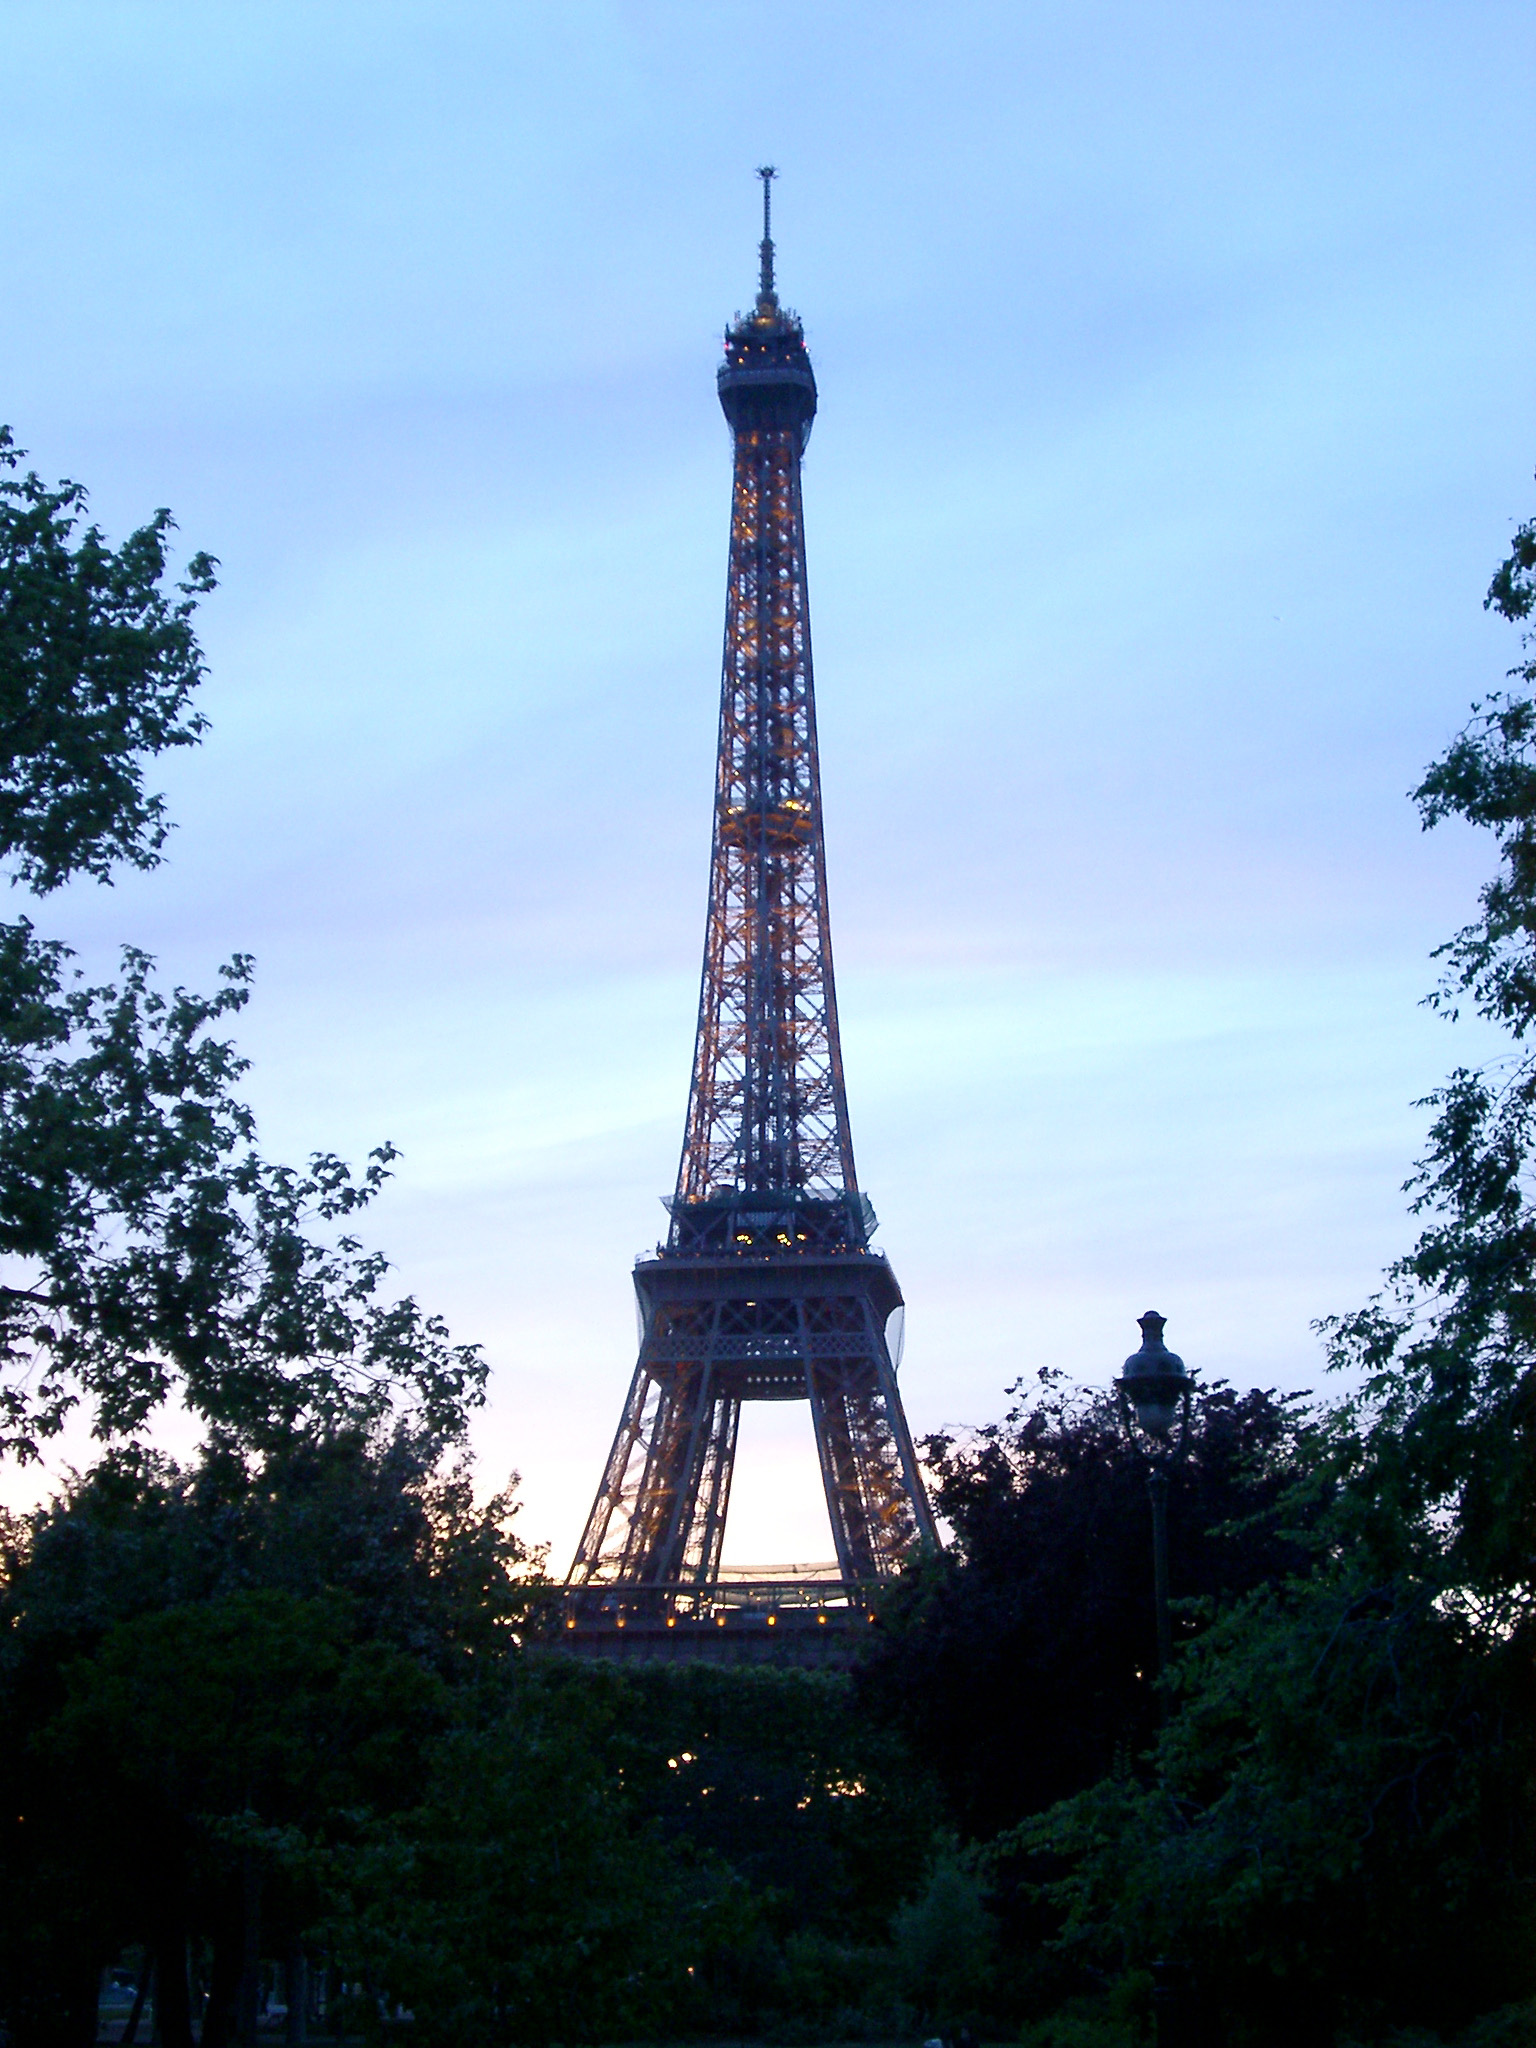 Silhouette of Eiffel Tower and Tree Tops at Dusk or Dawn, Paris, France